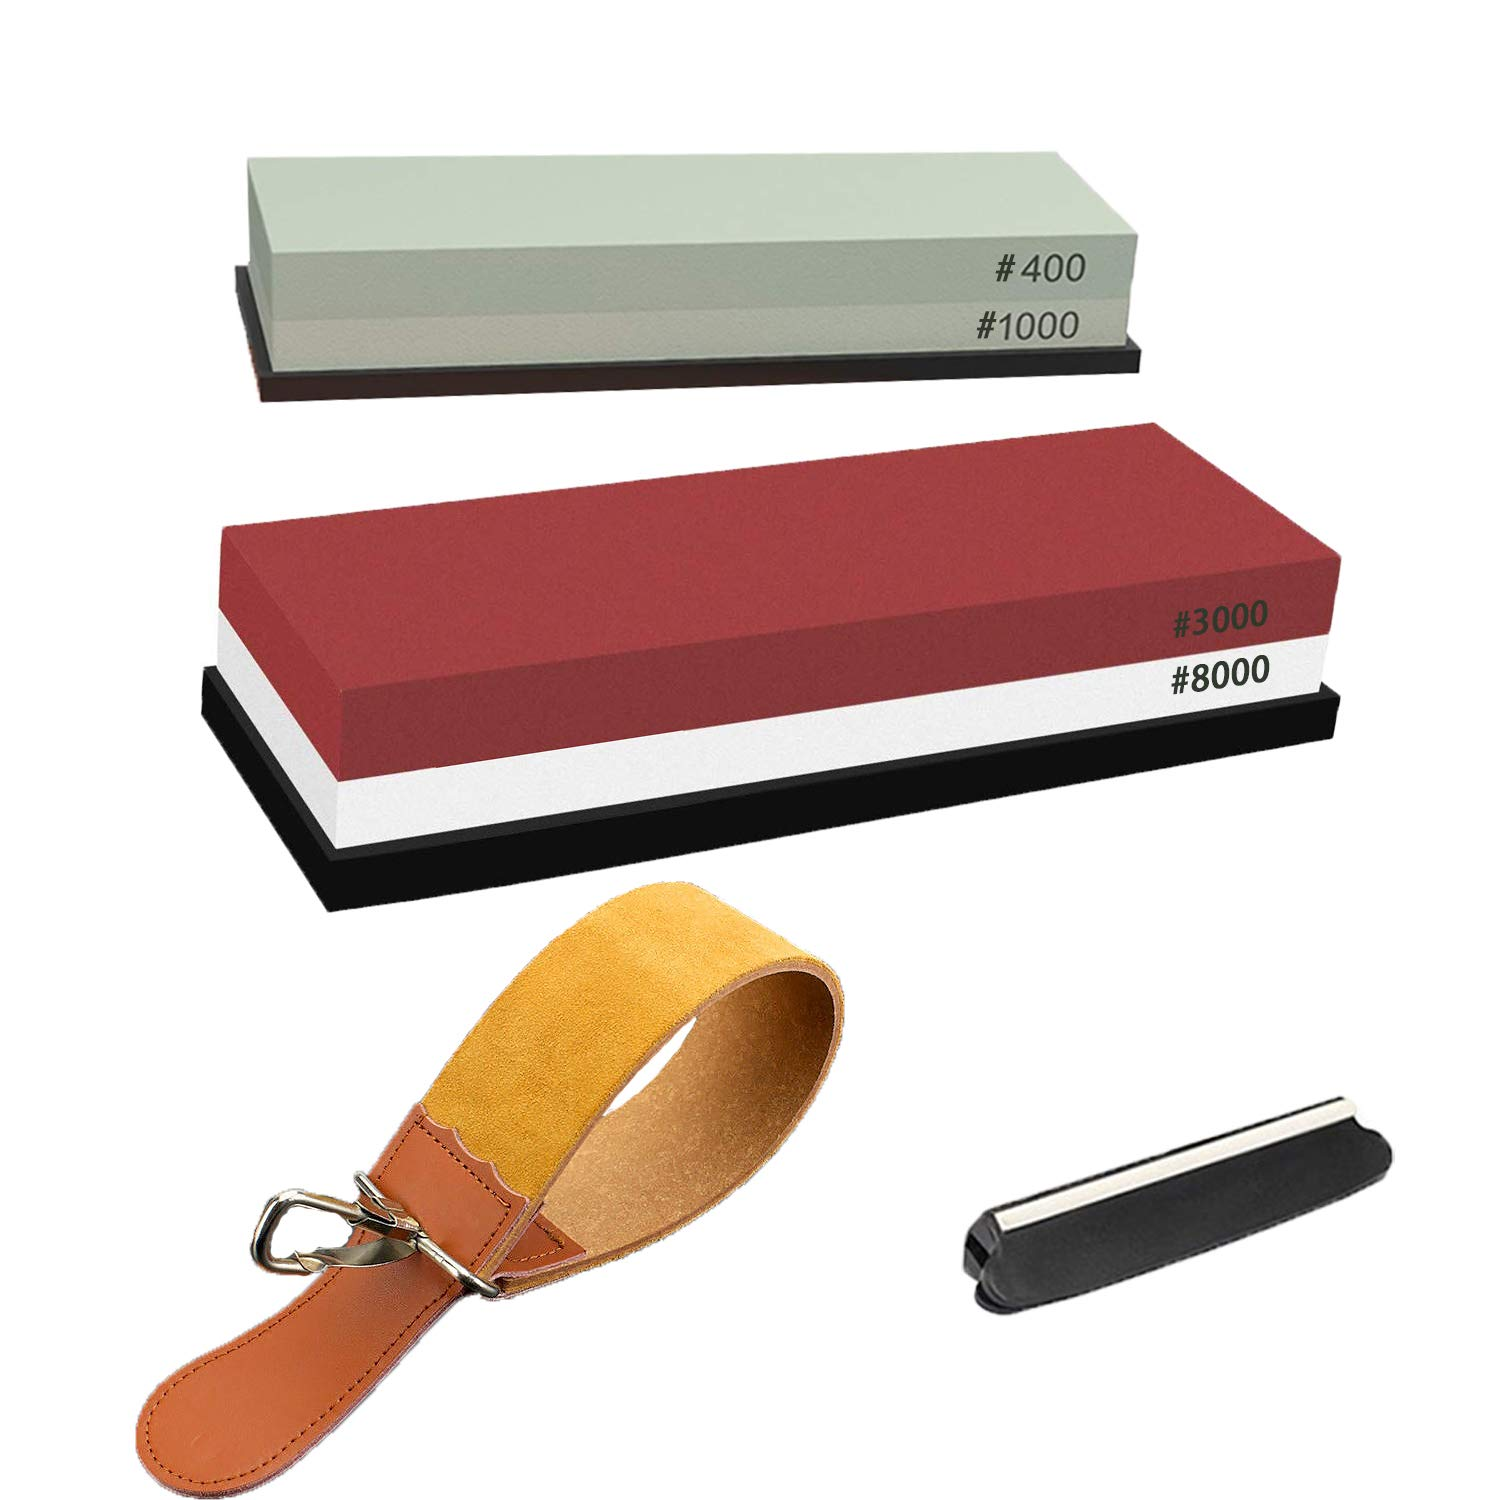 2-IN-1 Sharpening Stone Premium 4 Side Grit 400/1000 3000/8000 Water Stone Kit 。 Angle Guide and Leather Strop。Polishing Tool for Kitchen, Hunting and Pocket Knives by SVZIOOG